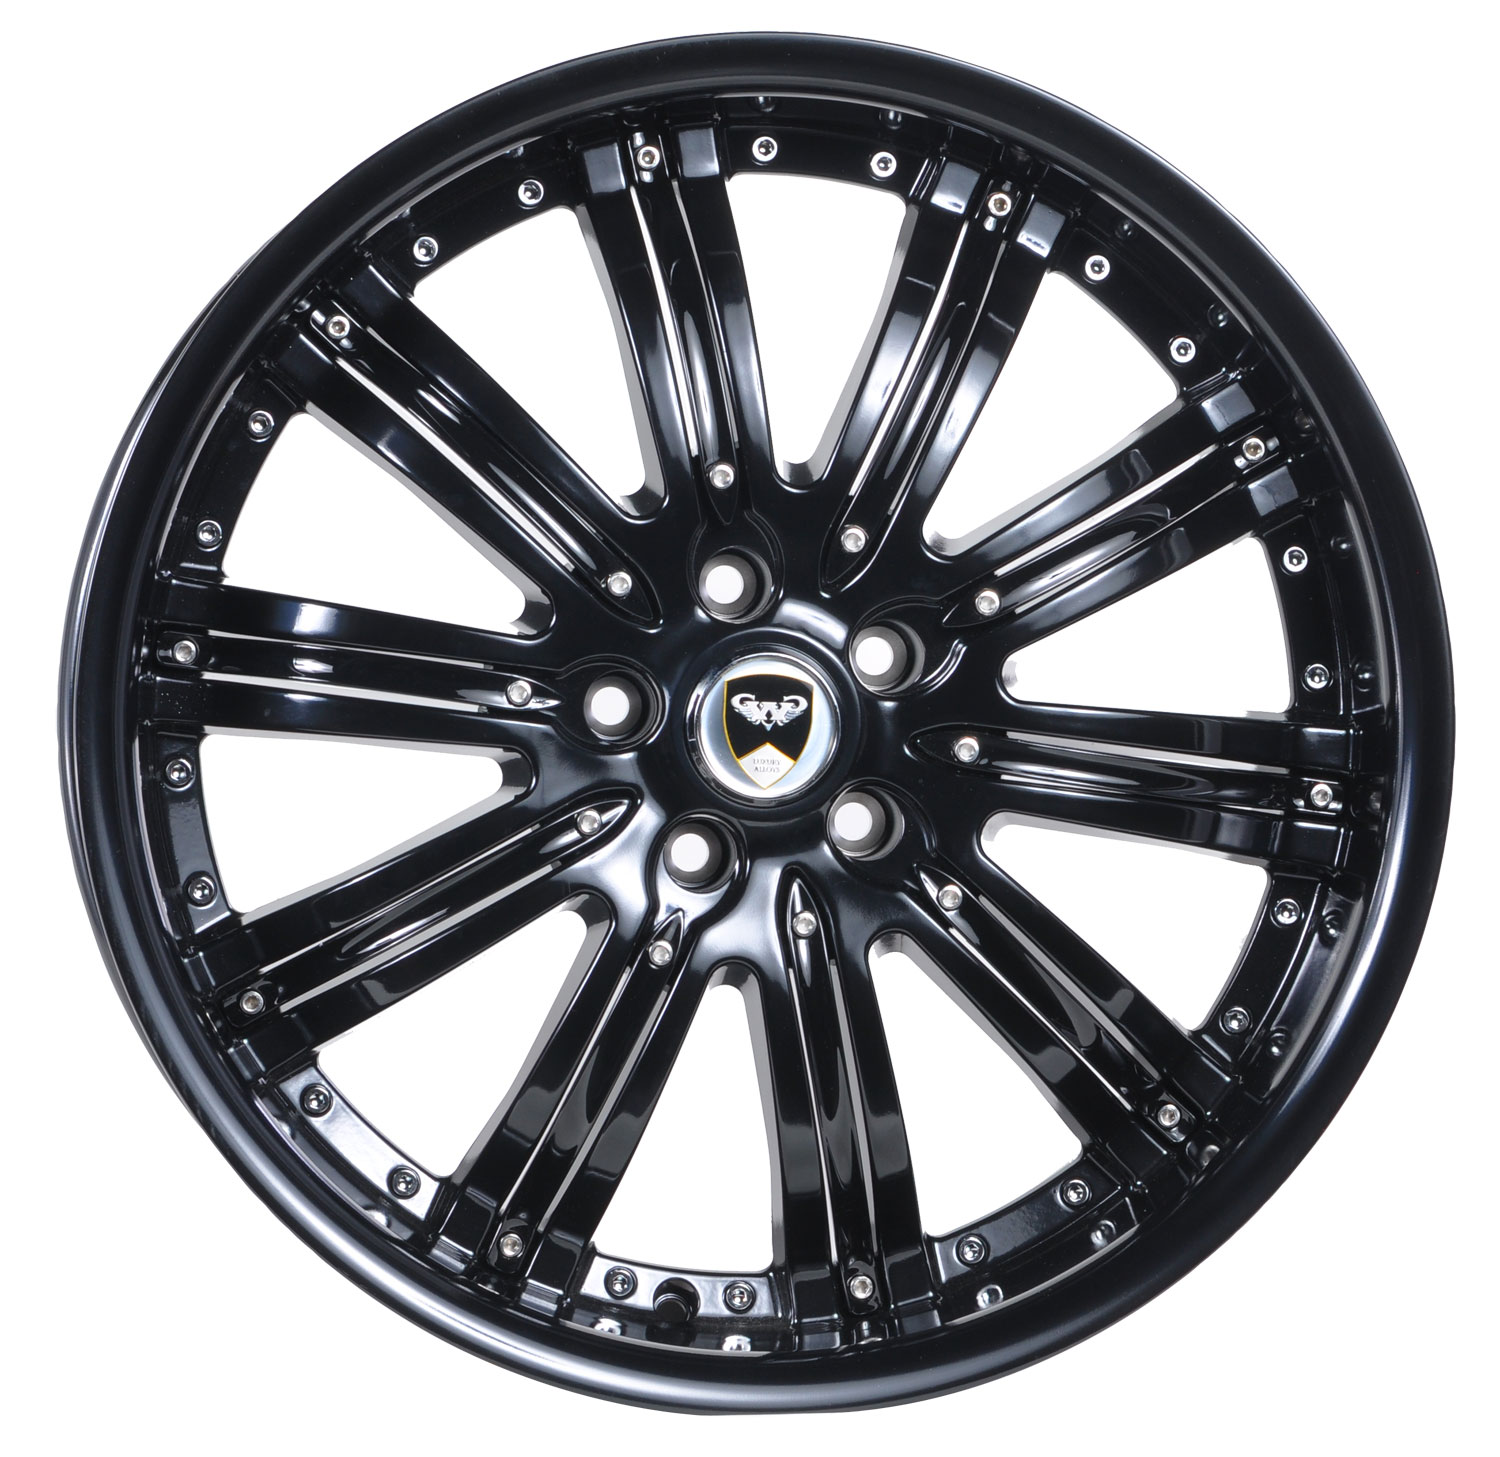 This wheel is fabulous, made for almost any make and model vehicle. The 10 dual spoke wheel adds a lot of style to the look of your vehicle. When you ride the street you will turn heads with this wheel.